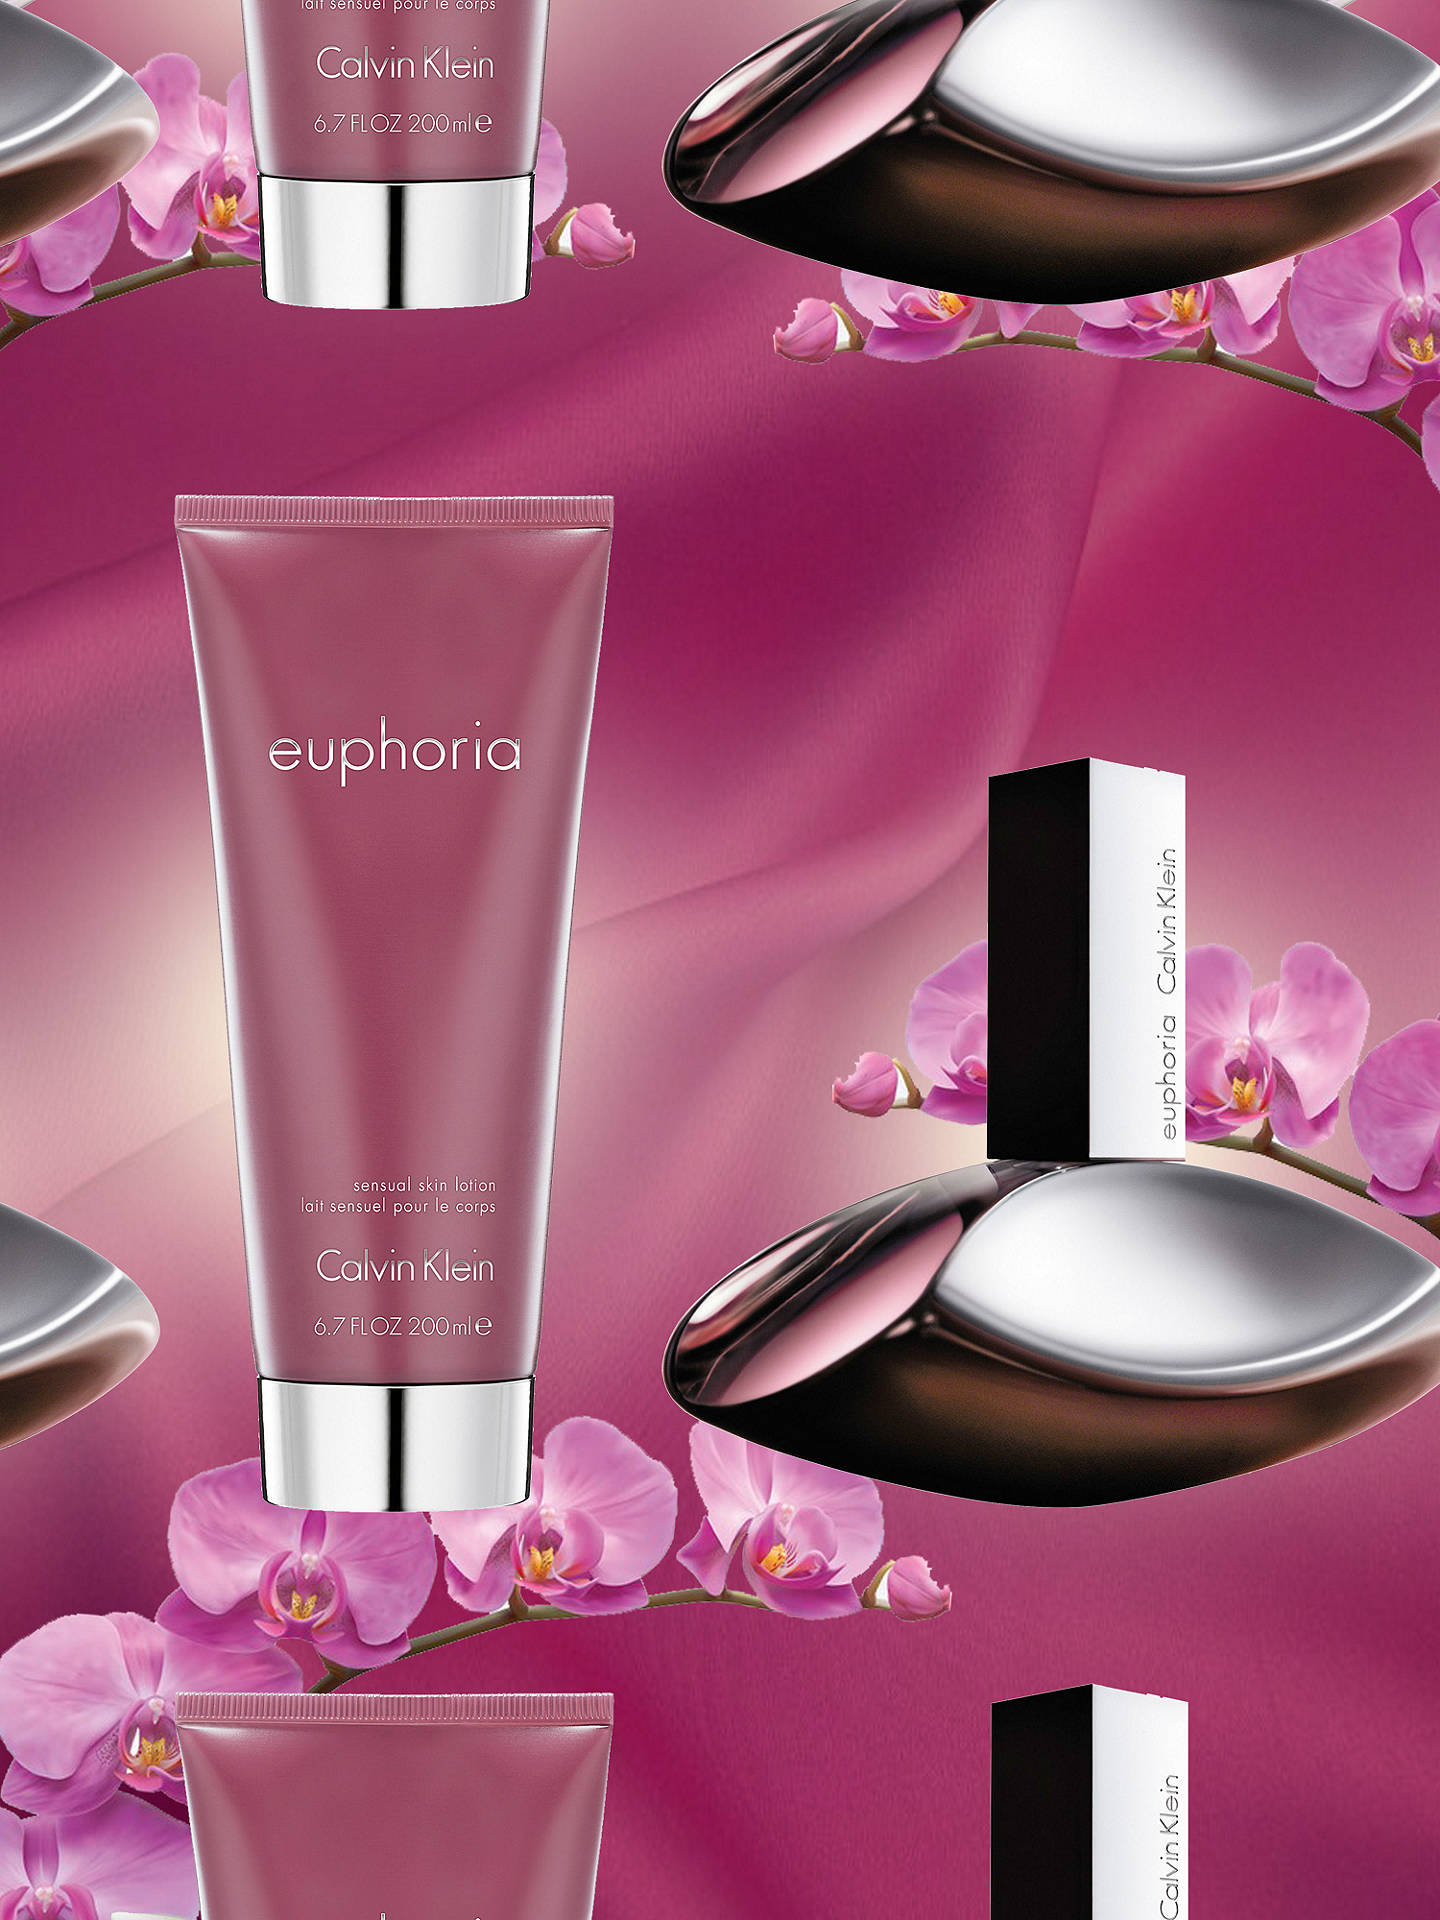 BuyCalvin Klein Euphoria For Women 50ml Eau de Parfum Fragrance Gift Set Online at johnlewis.com